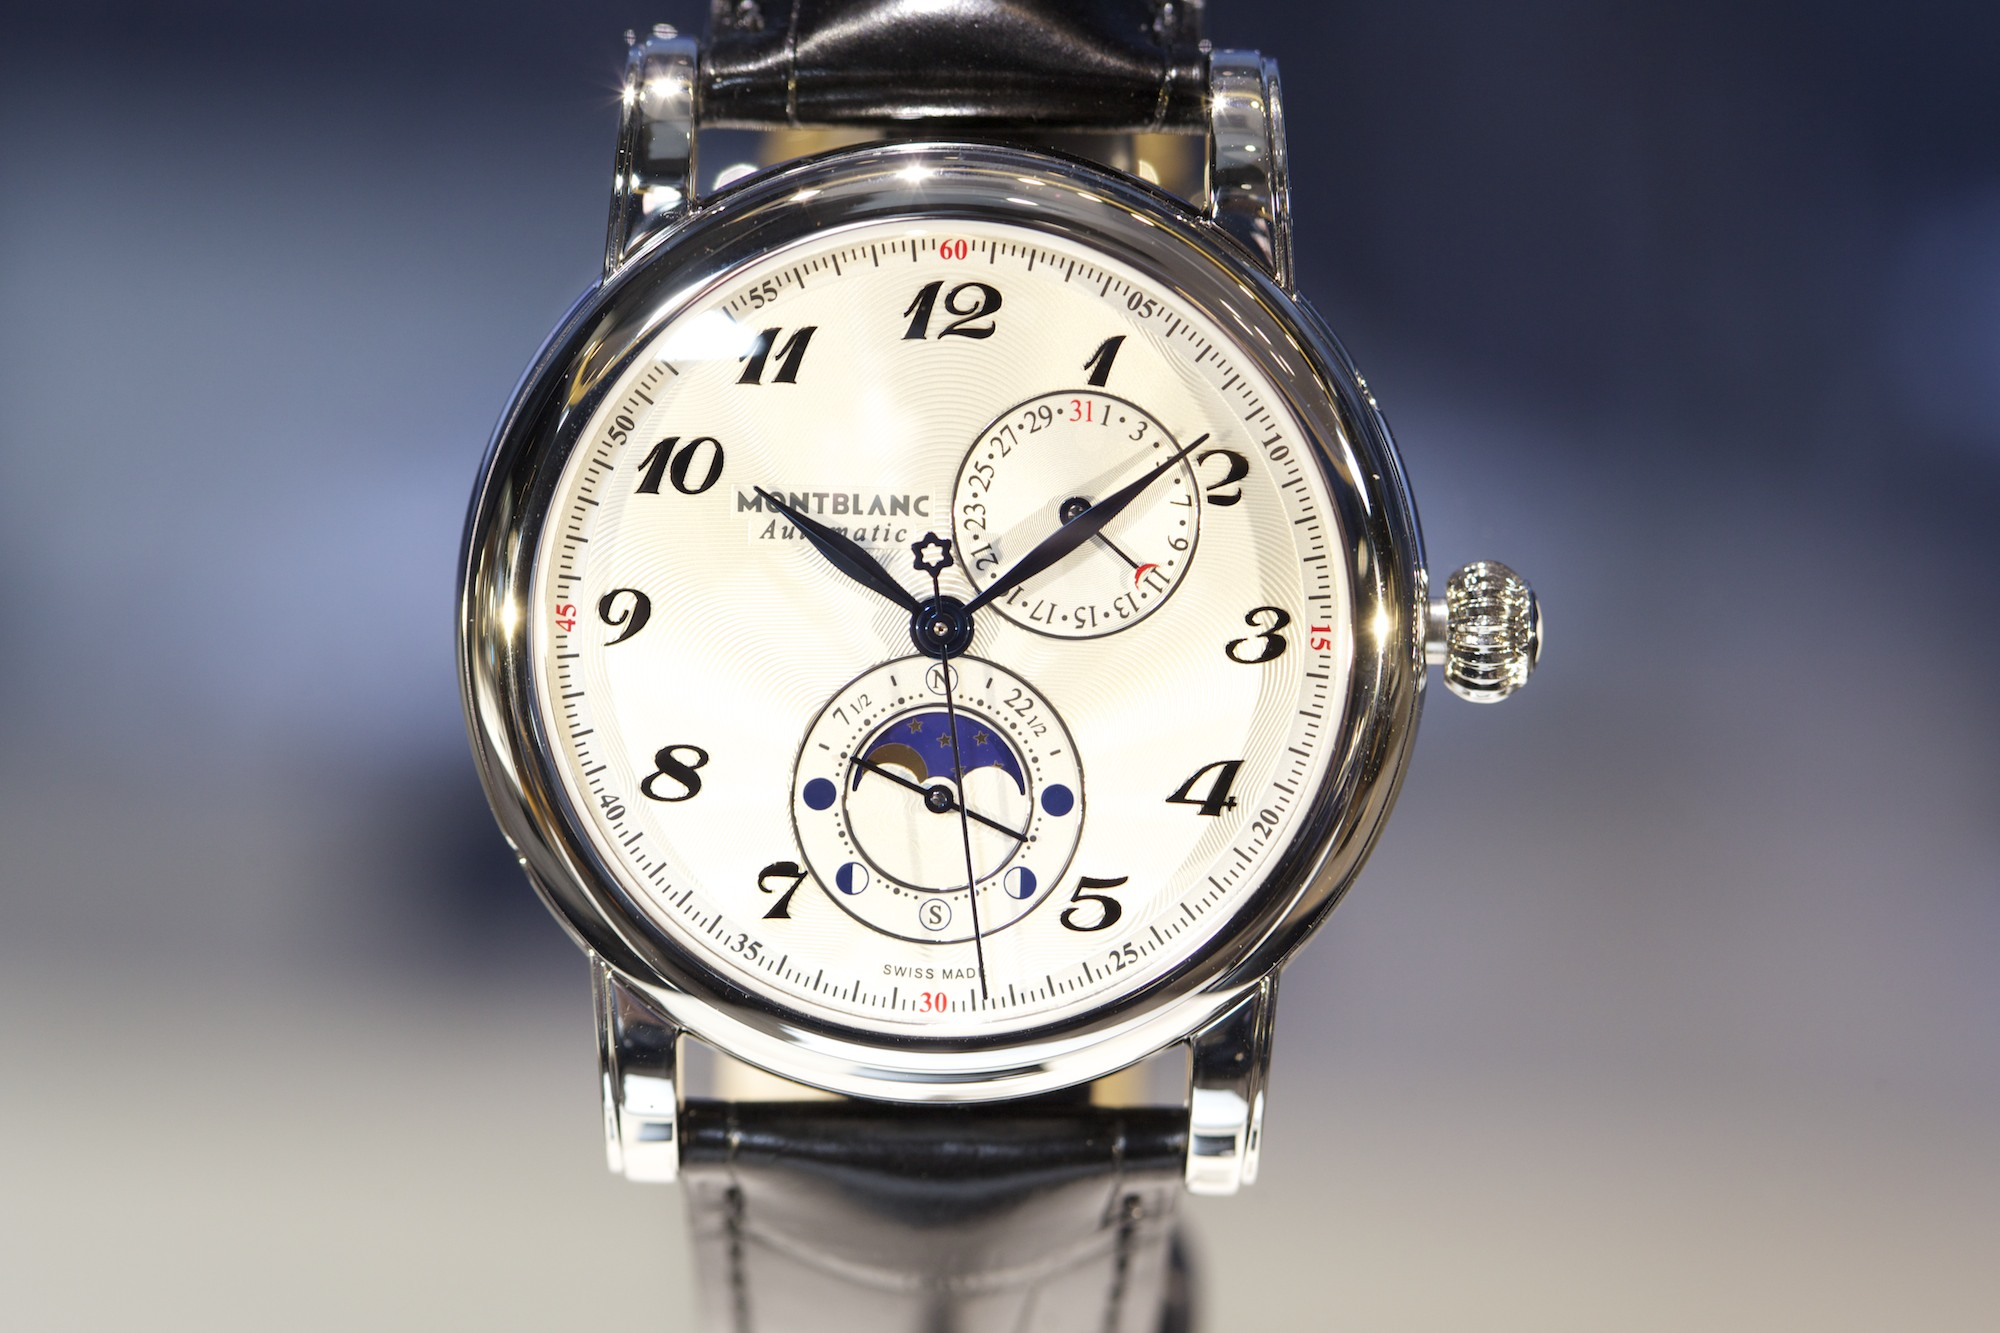 SIHH 2014 Montblanc Star Twin Moonphase Automatic